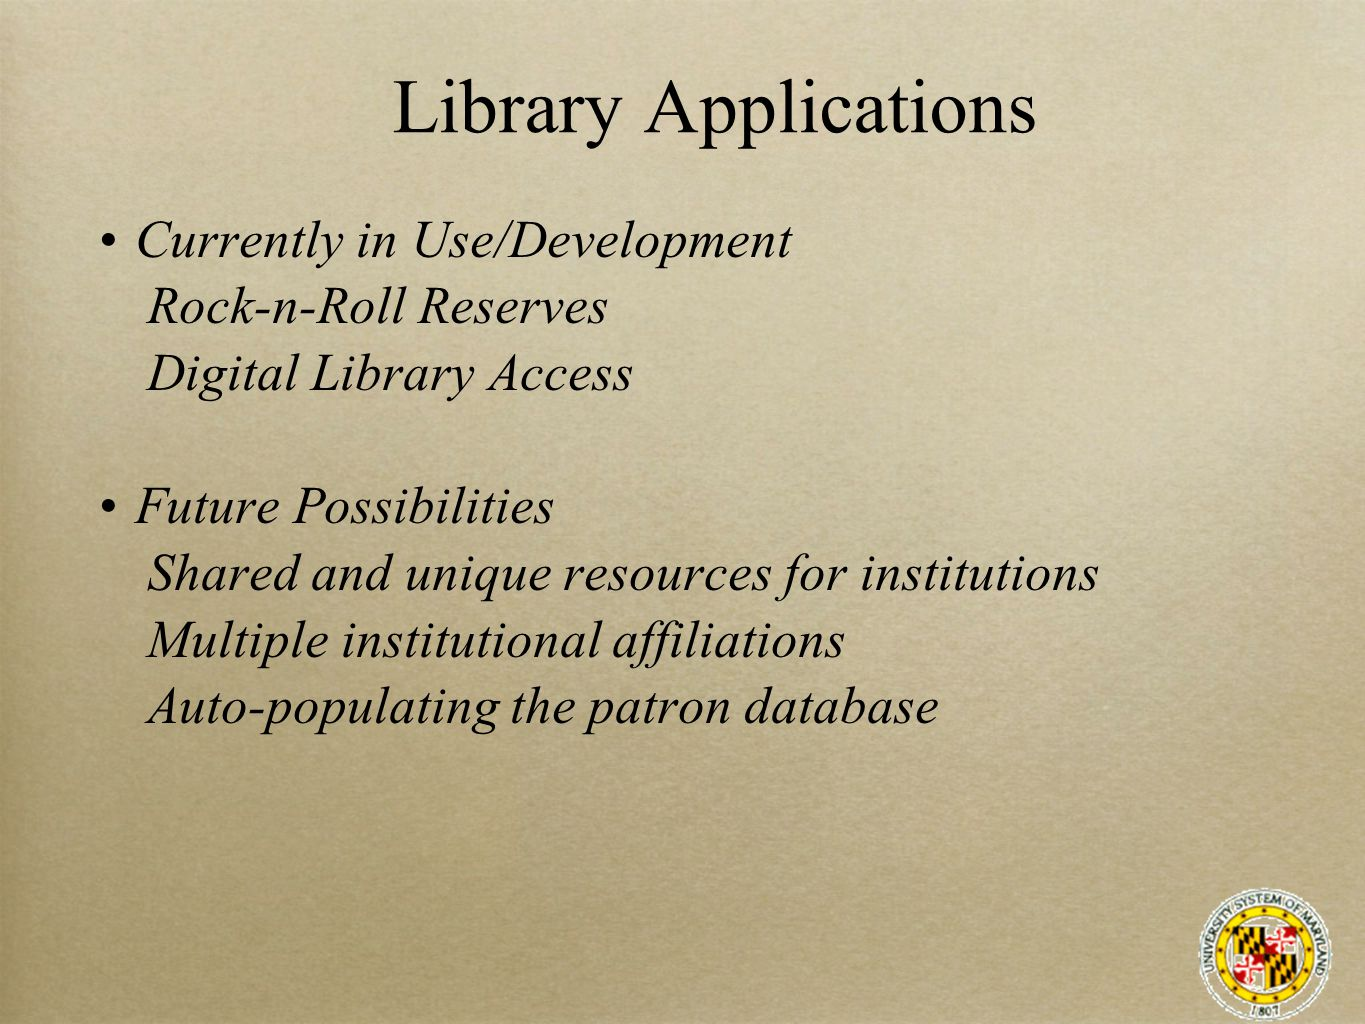 Library Applications Currently in Use/Development Rock-n-Roll Reserves Digital Library Access Future Possibilities Shared and unique resources for institutions Multiple institutional affiliations Auto-populating the patron database